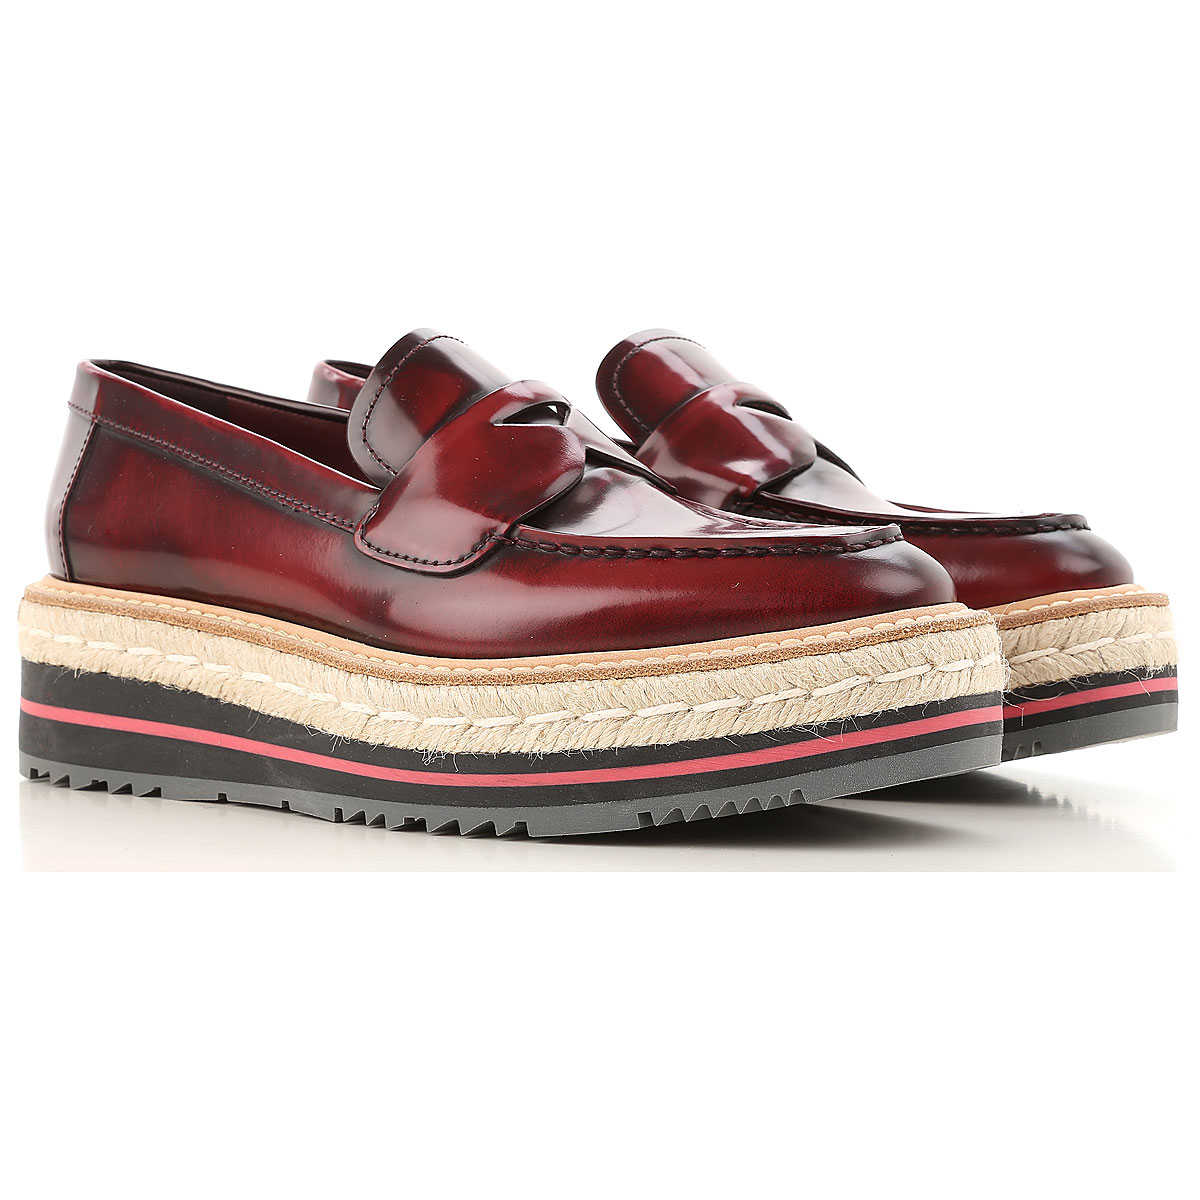 Prada Loafers for Women On Sale in Outlet Scarlet Red SE - GOOFASH